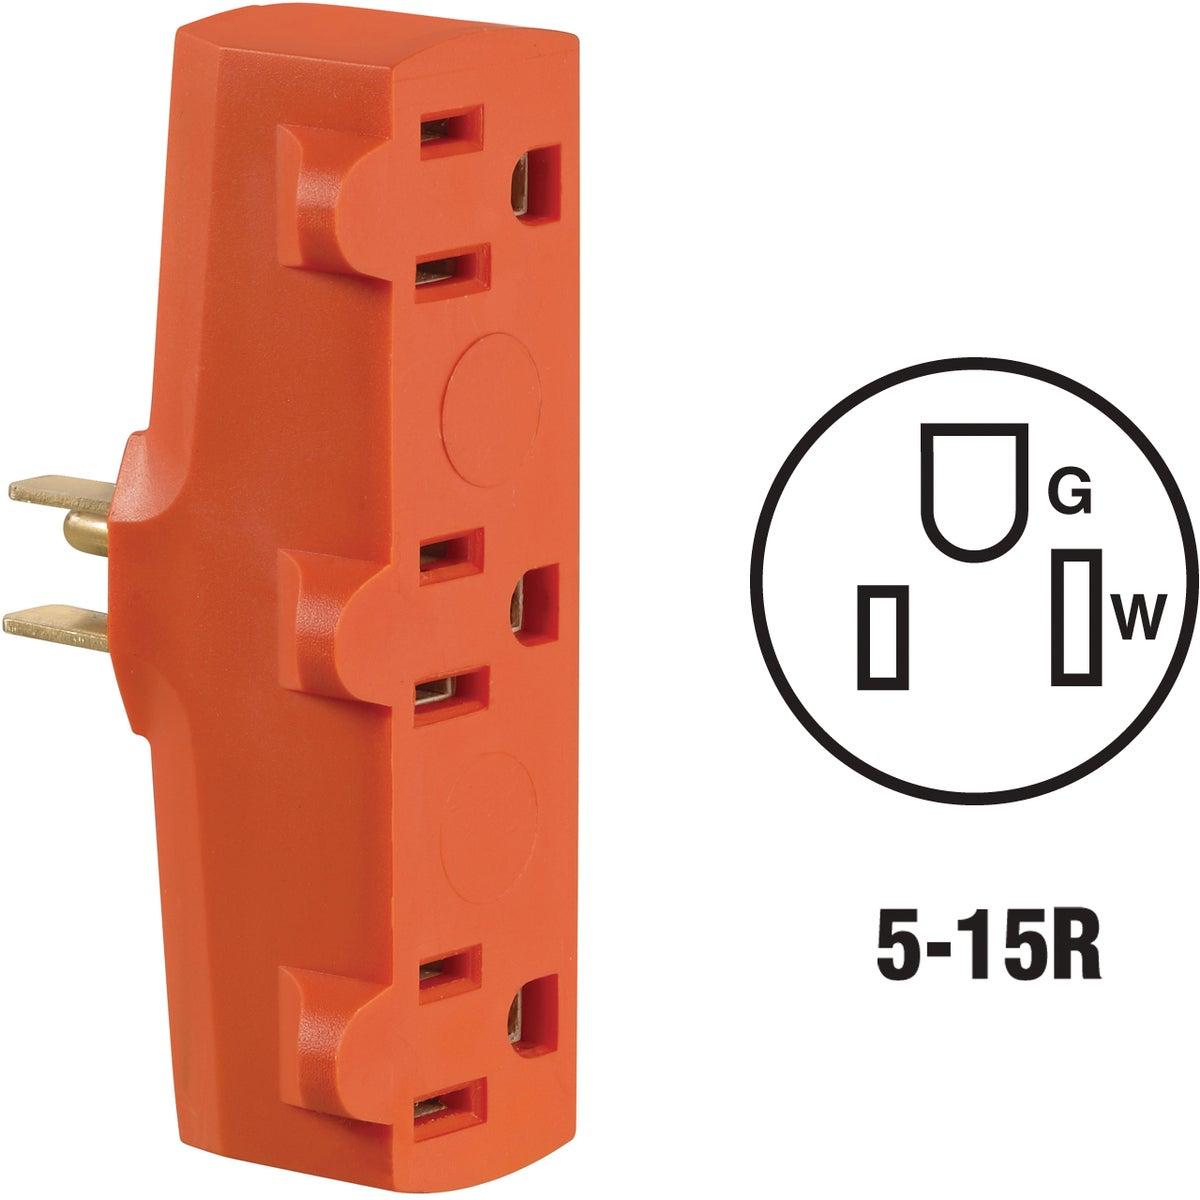 ORGN TRIPLE GRND TAP - DB0-699 by Leviton Mfg Co